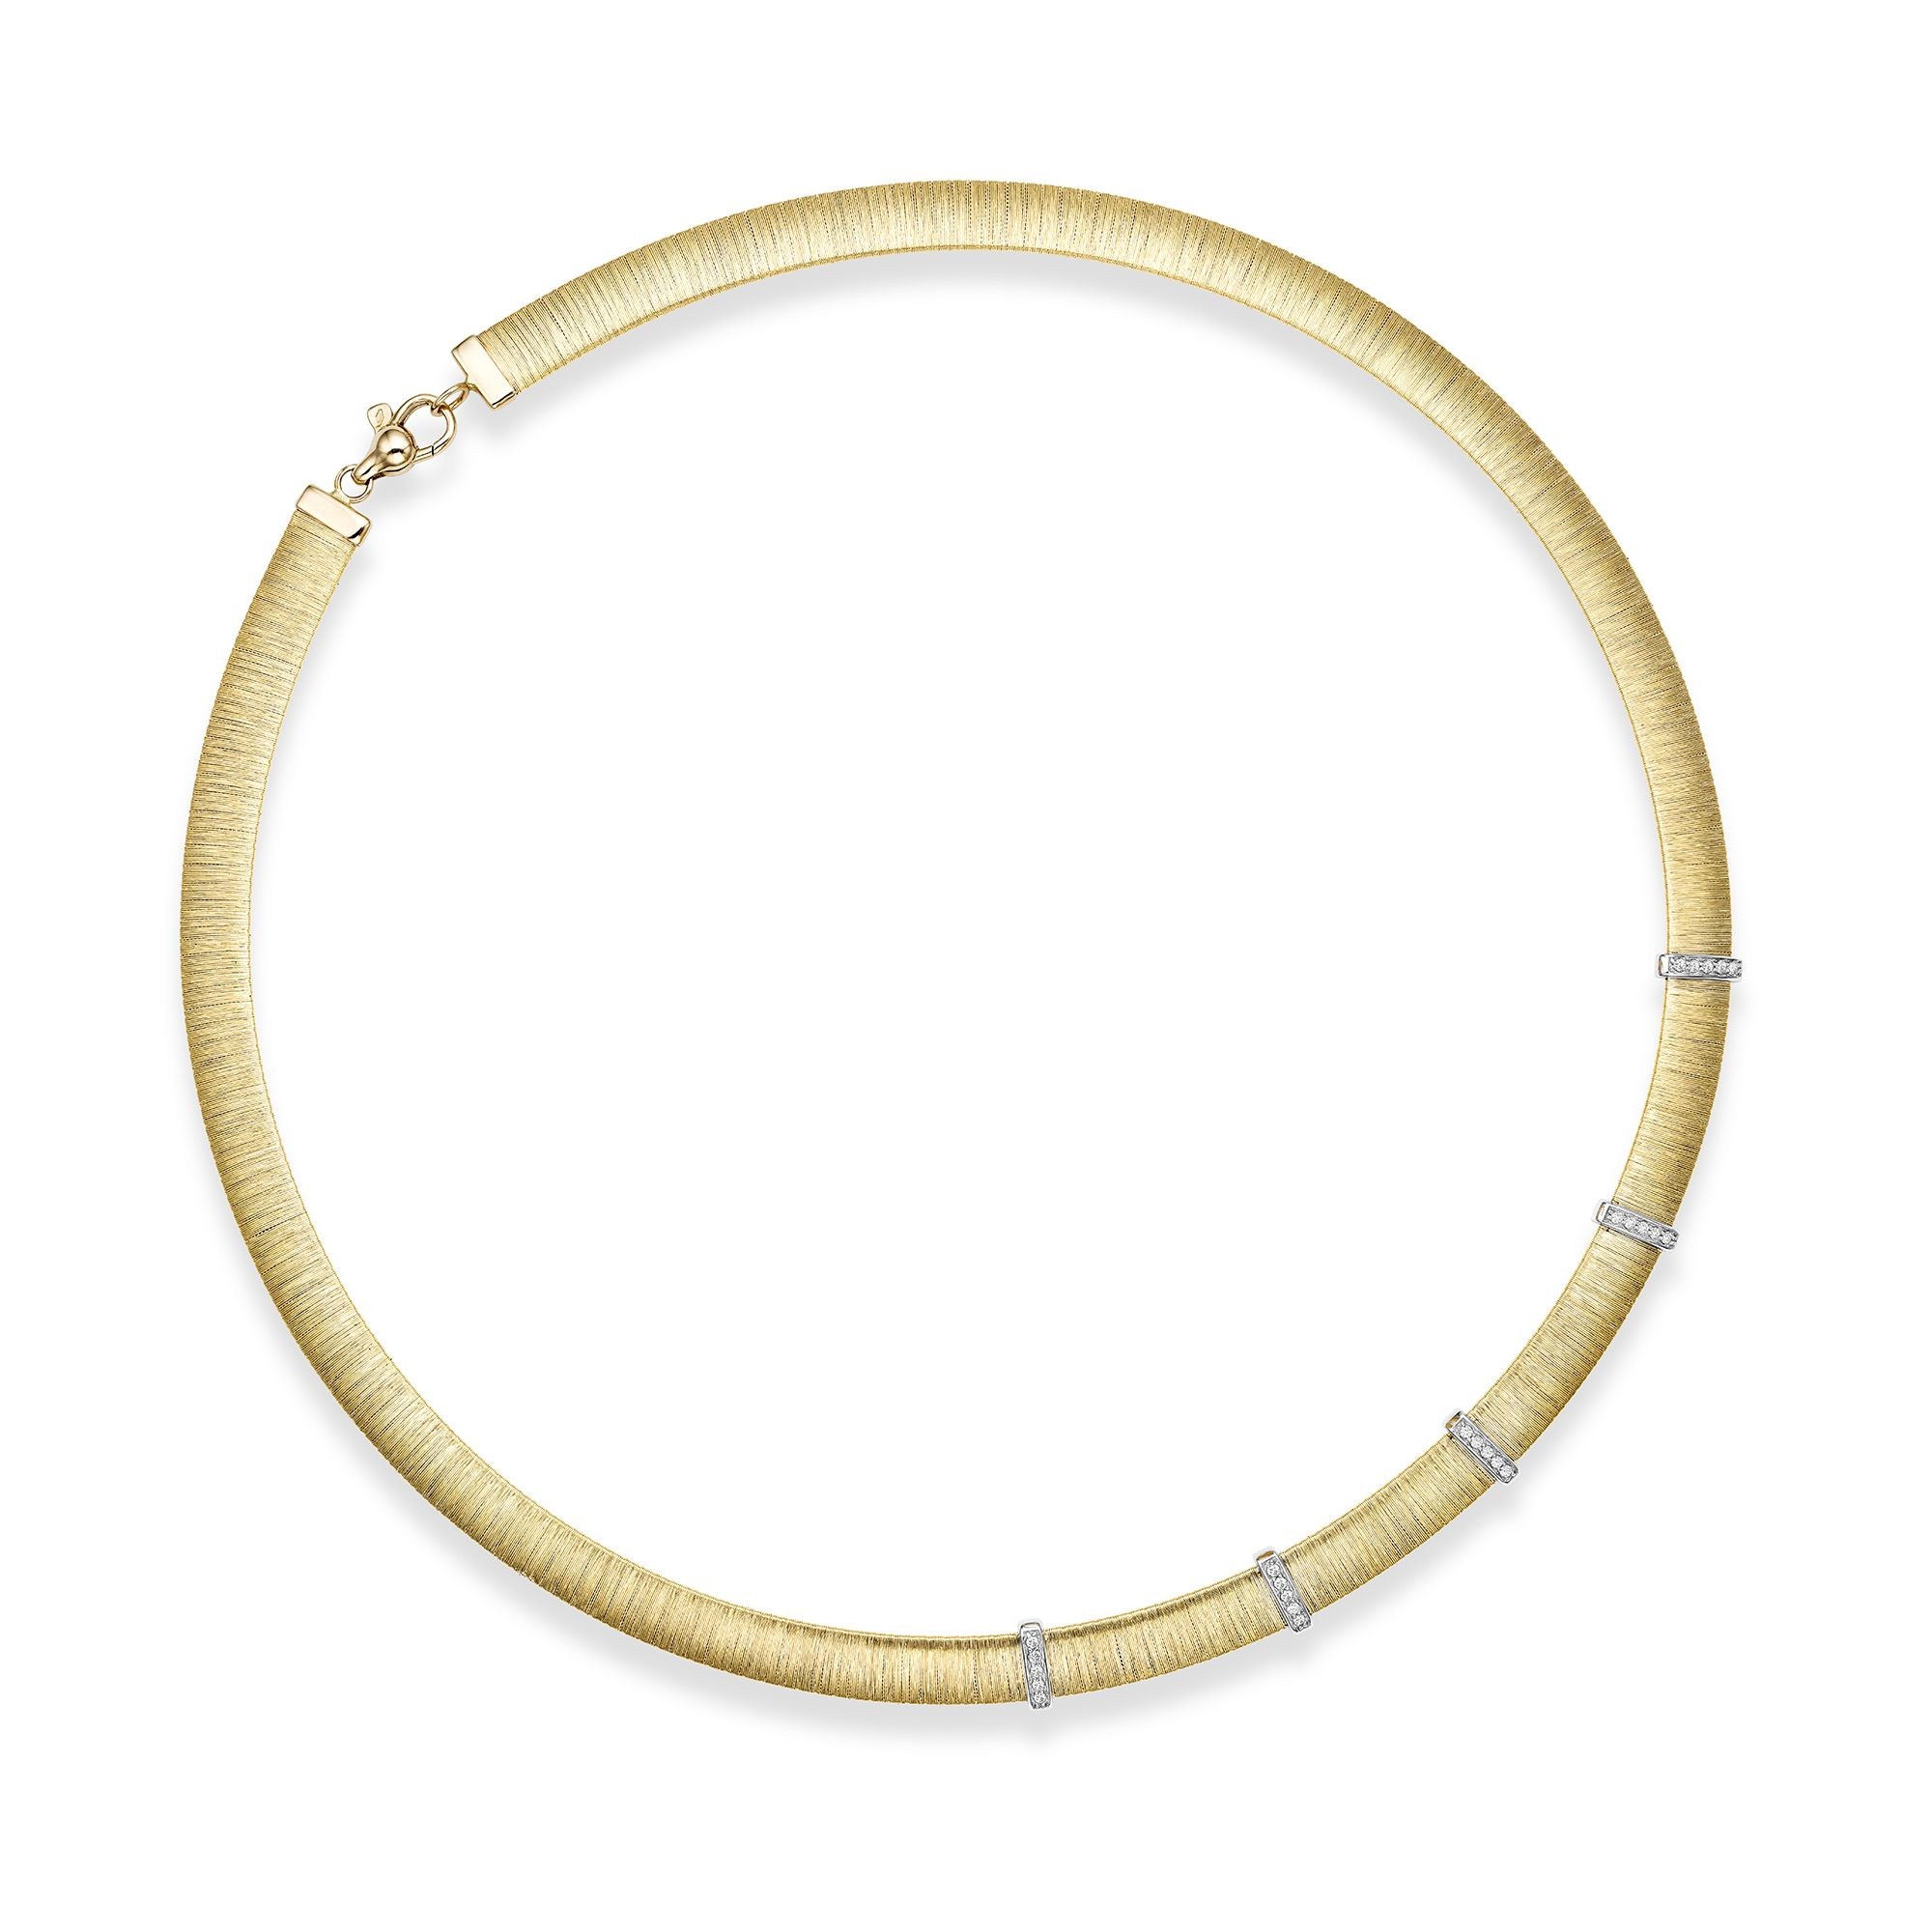 14kt Gold 17.75 inches Yellow+Rhodium Finish 8mm Textured Dome Bar Stationed Necklace with Lobster Clasp with 0.2500ct 1.3mm White Diamond